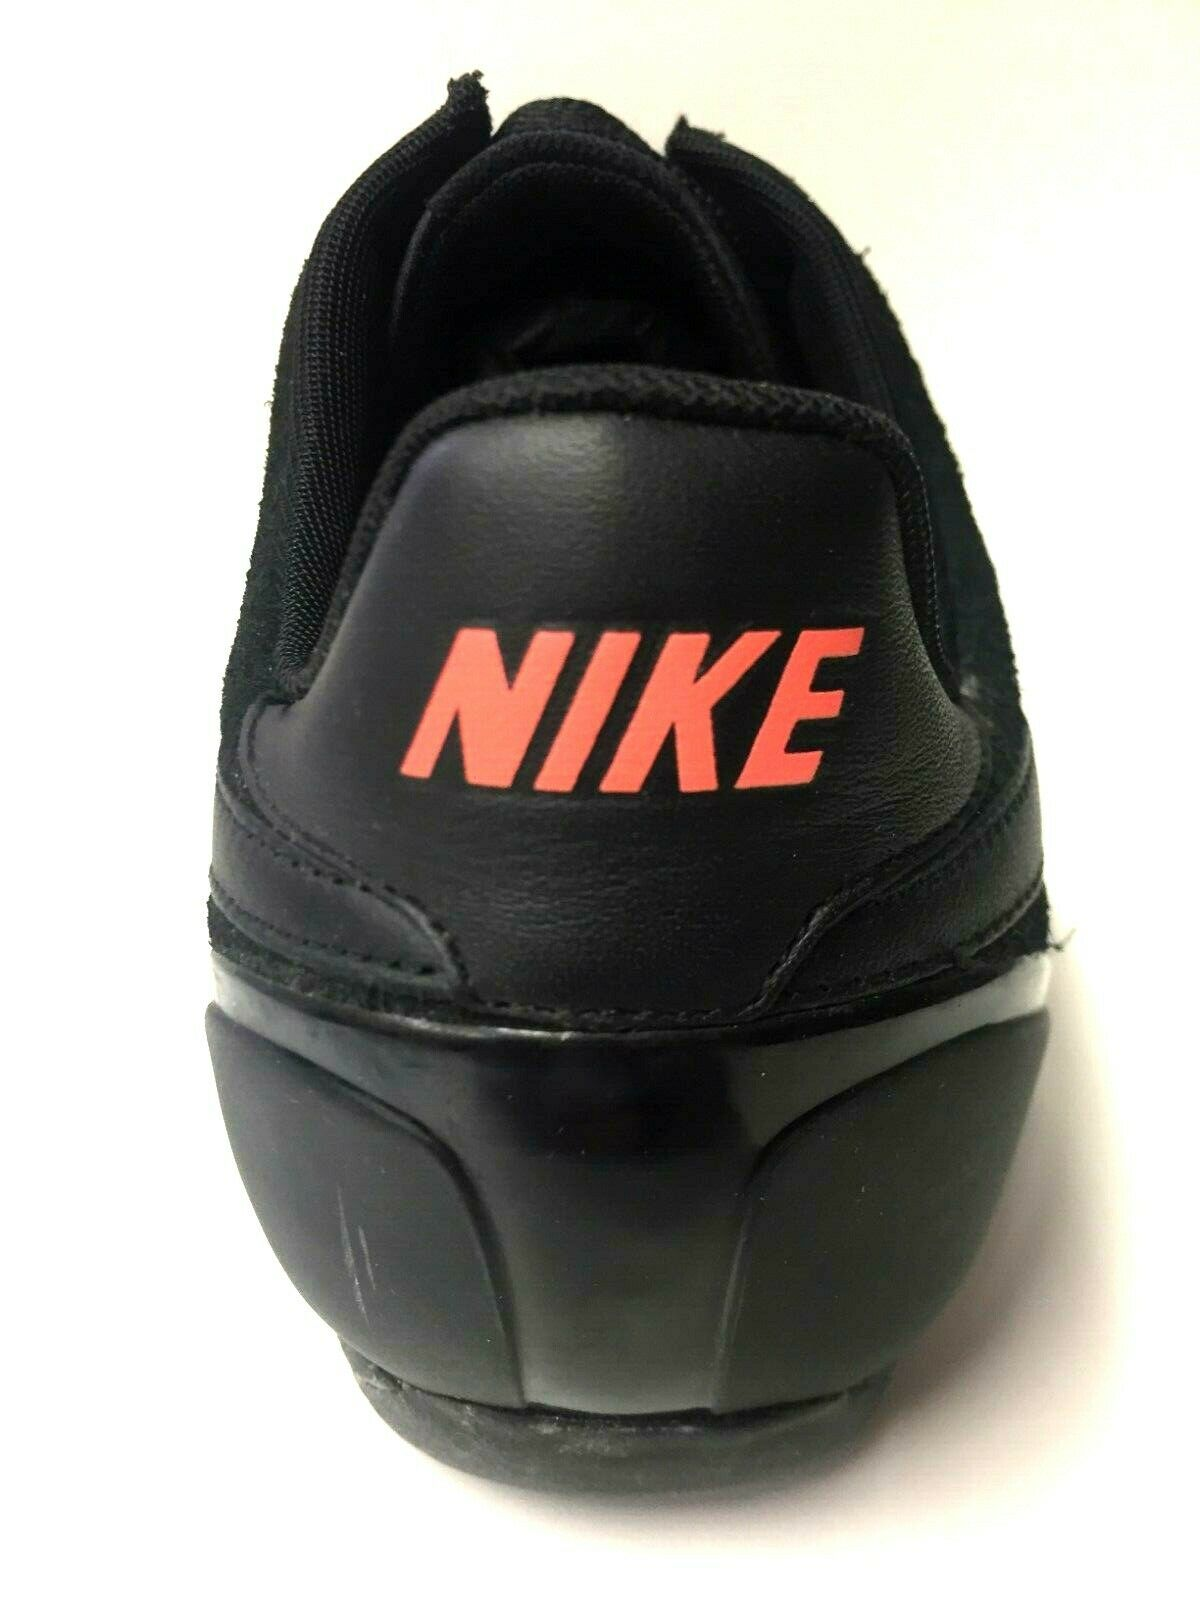 nike brother in vendita | eBay